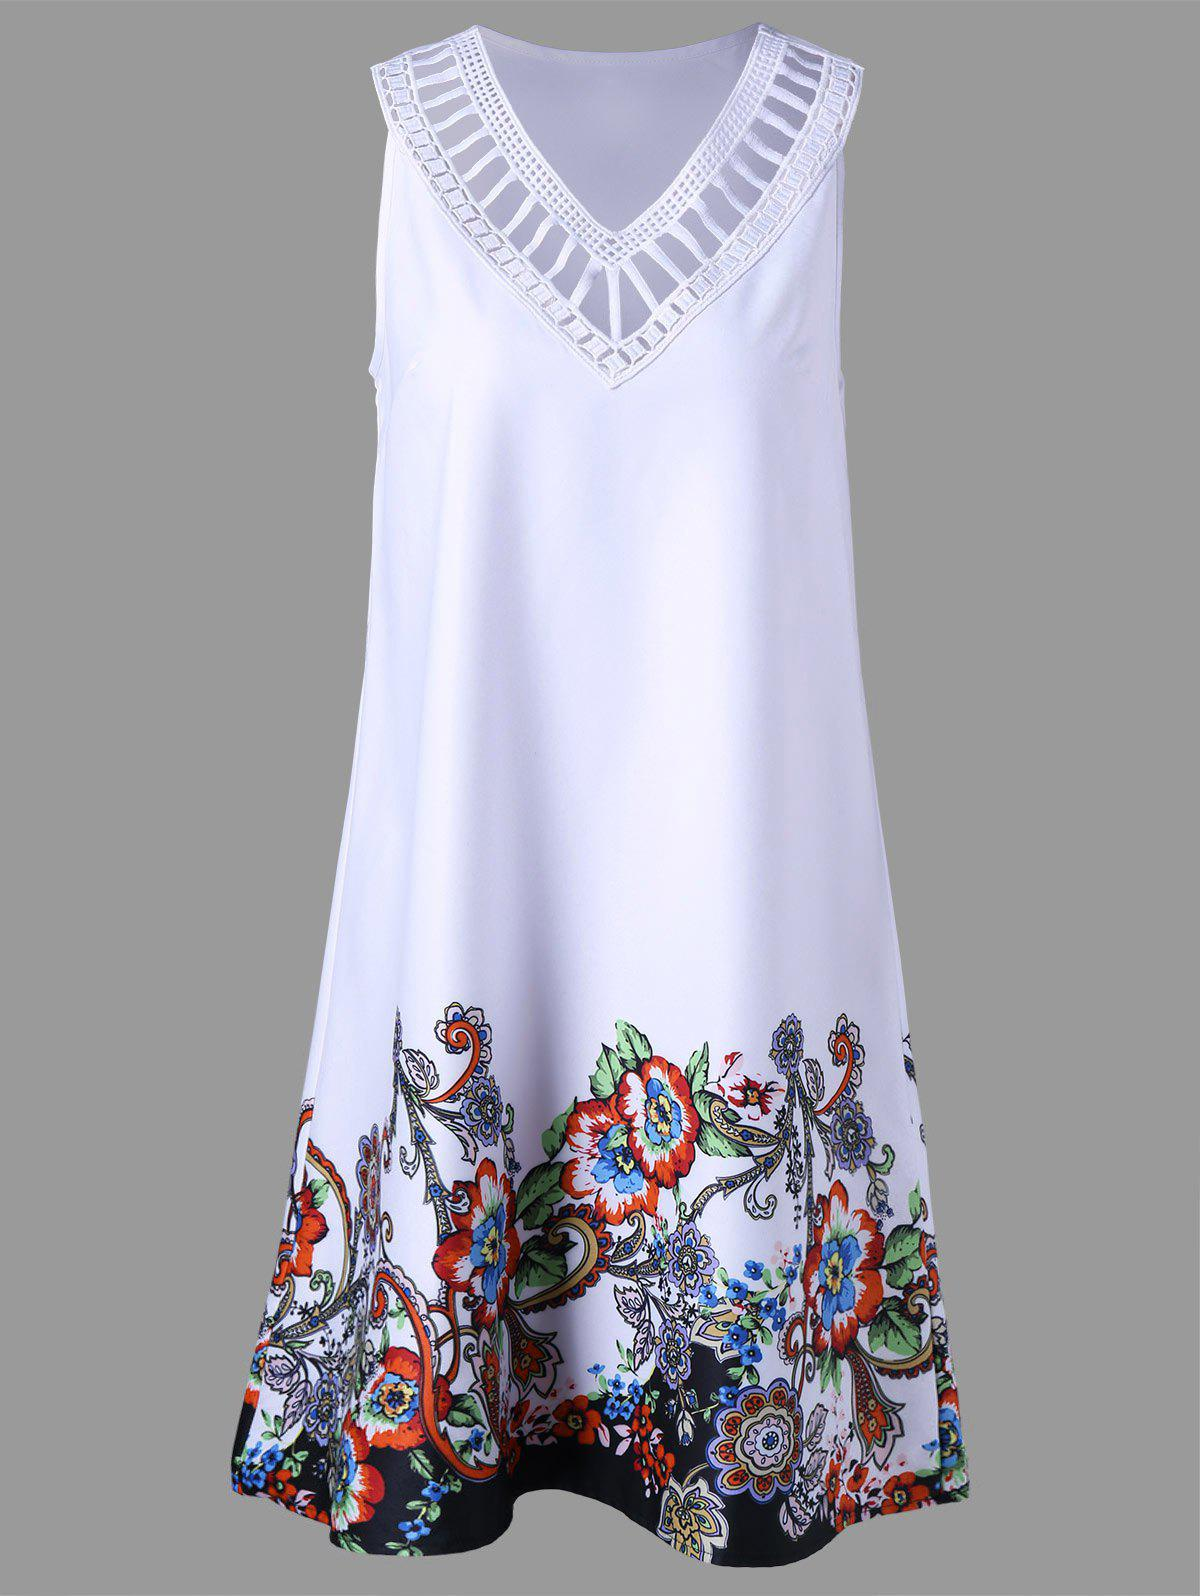 Floral Sleeveless Ladder Detail DressWOMEN<br><br>Size: L; Color: WHITE; Style: Casual; Material: Polyester; Silhouette: A-Line; Dresses Length: Knee-Length; Neckline: V-Neck; Sleeve Length: Sleeveless; Pattern Type: Floral; With Belt: No; Season: Summer; Weight: 0.4400kg; Package Contents: 1 x Dress; Occasion: Going Out,Outdoor,Party;